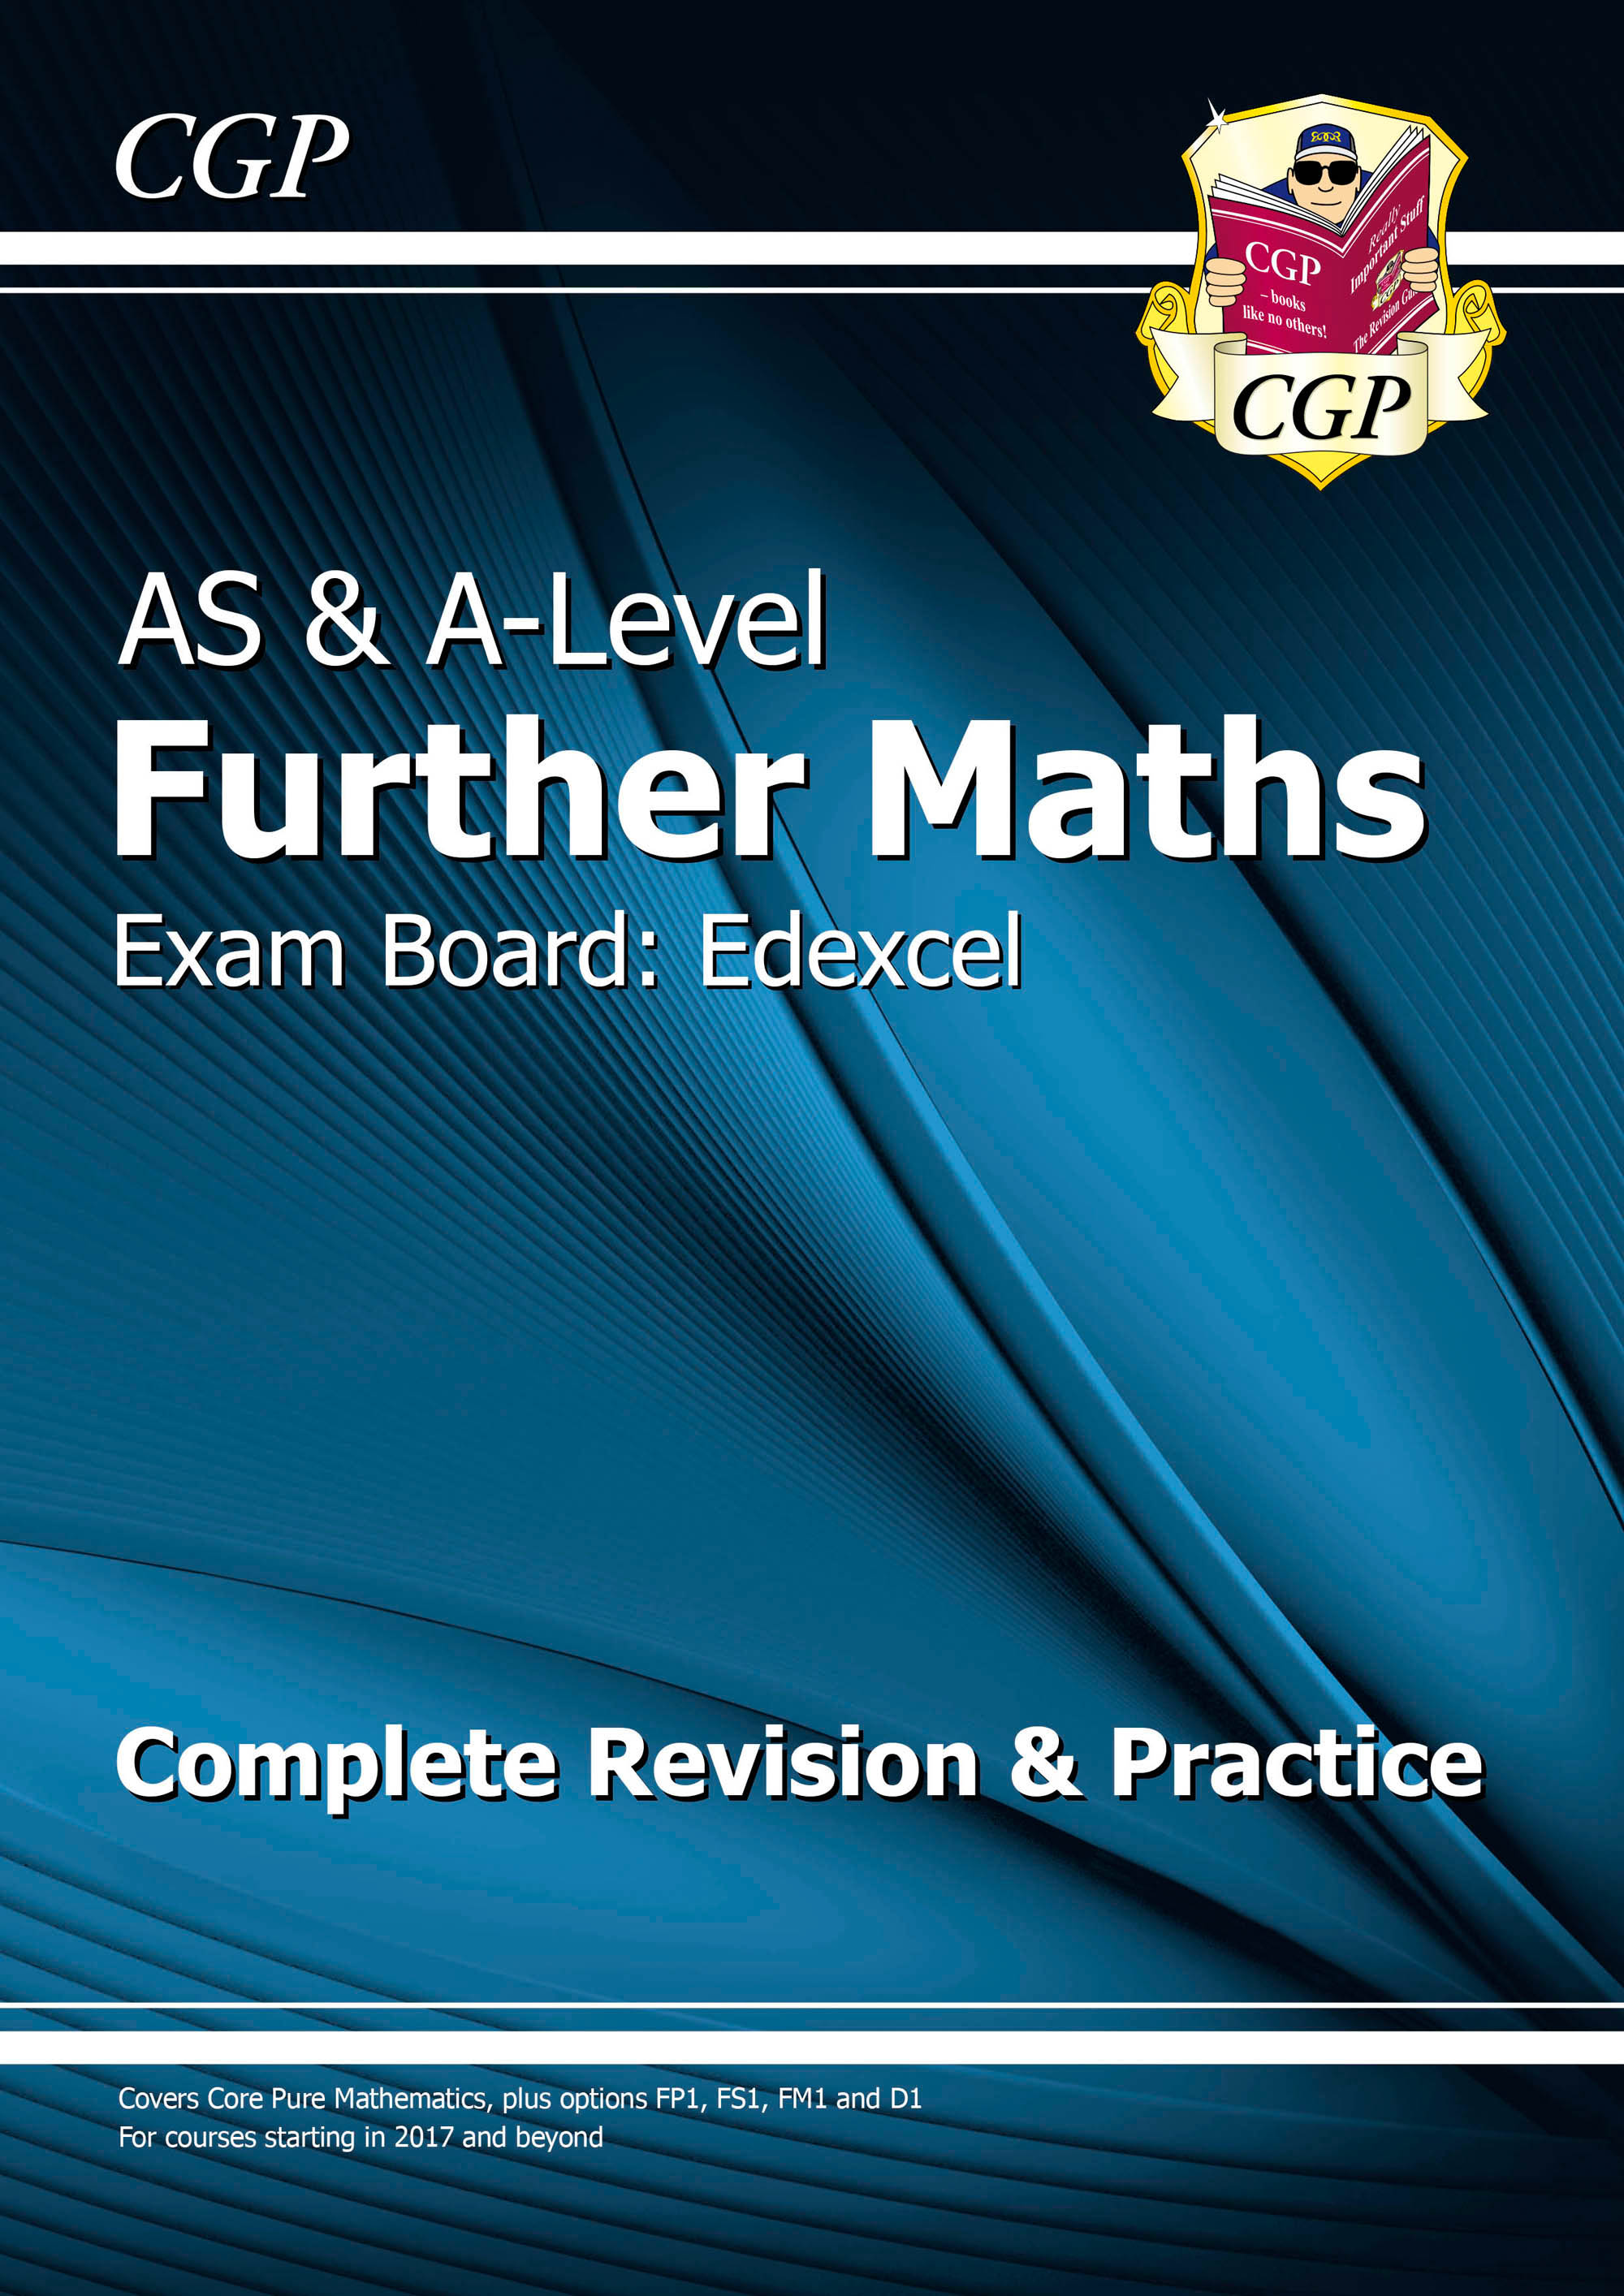 MFER71DK - New AS & A-Level Further Maths for Edexcel: Complete Revision & Practice